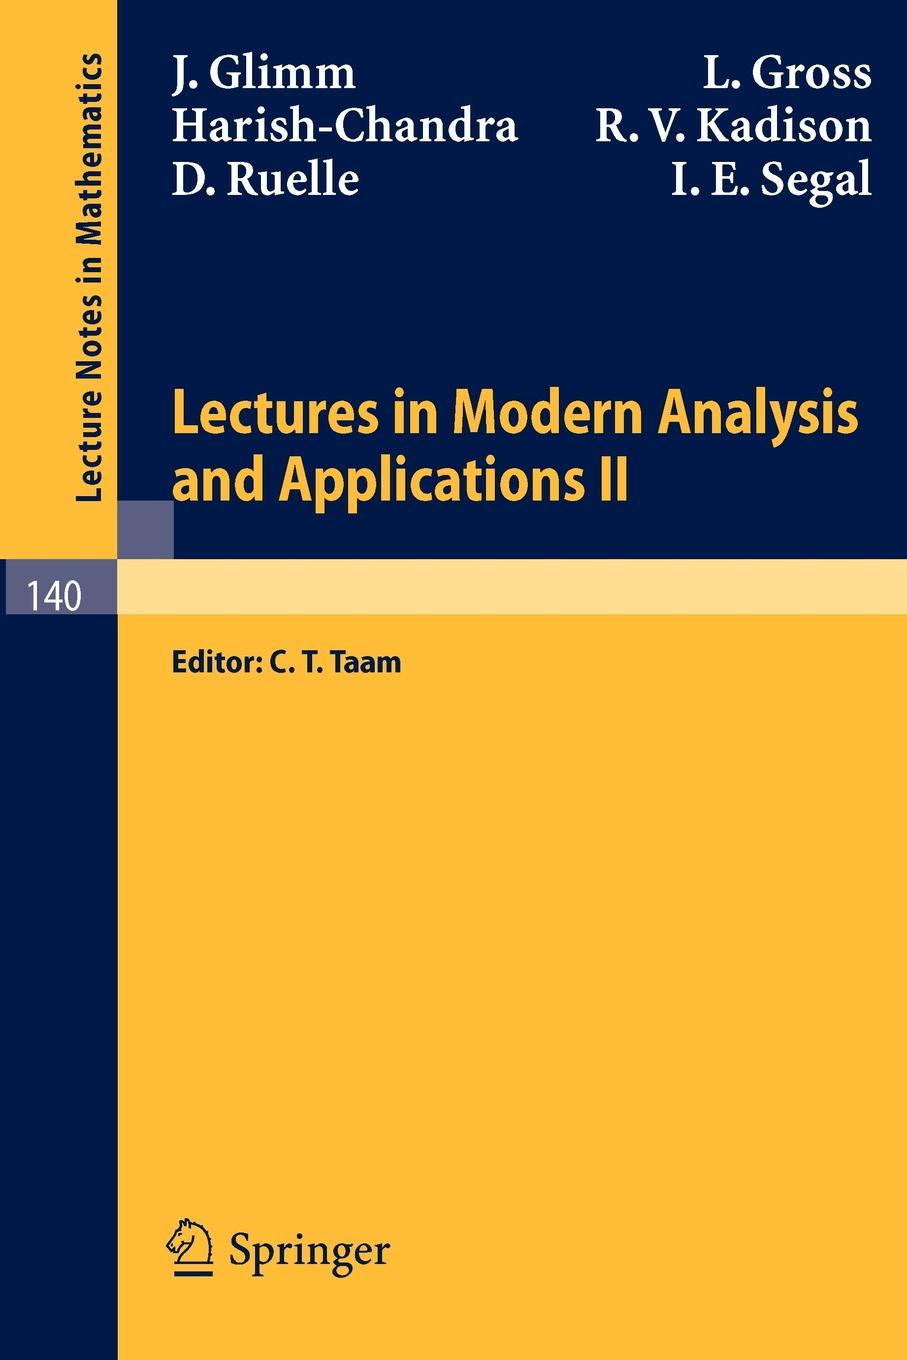 J. Glimm, L. Gross Lectures in Modern Analysis and Applications II